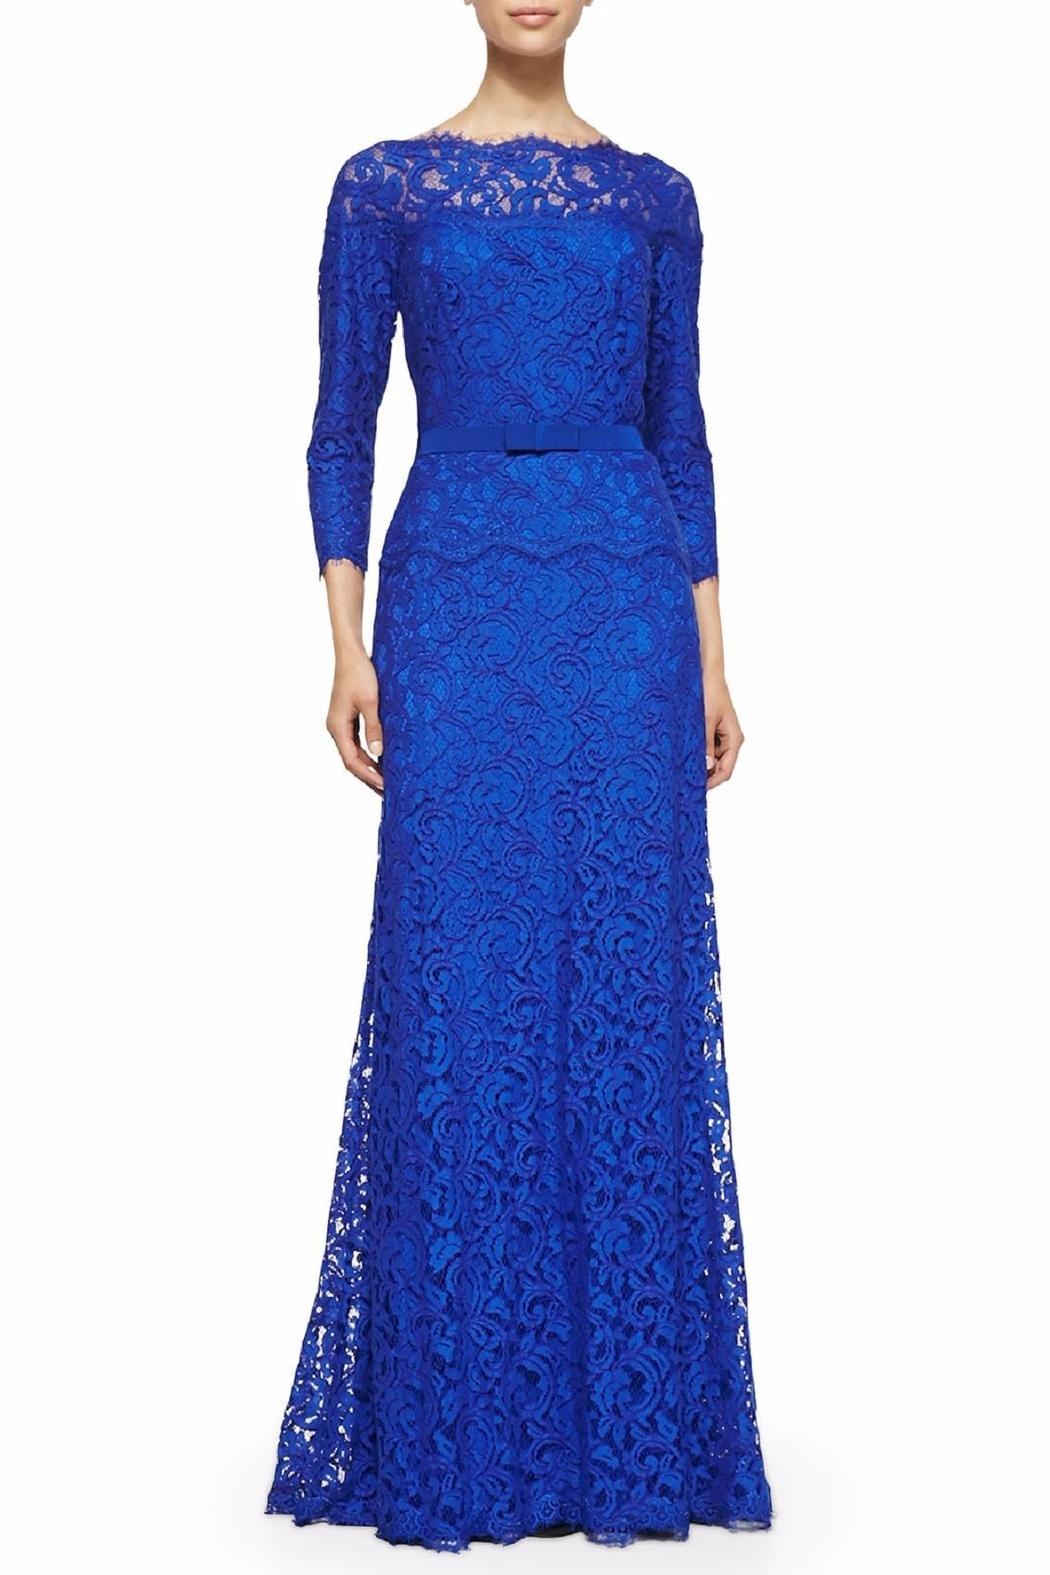 Tadashi Shoji Blue Lace Gown from New Jersey by District 5 Boutique ...